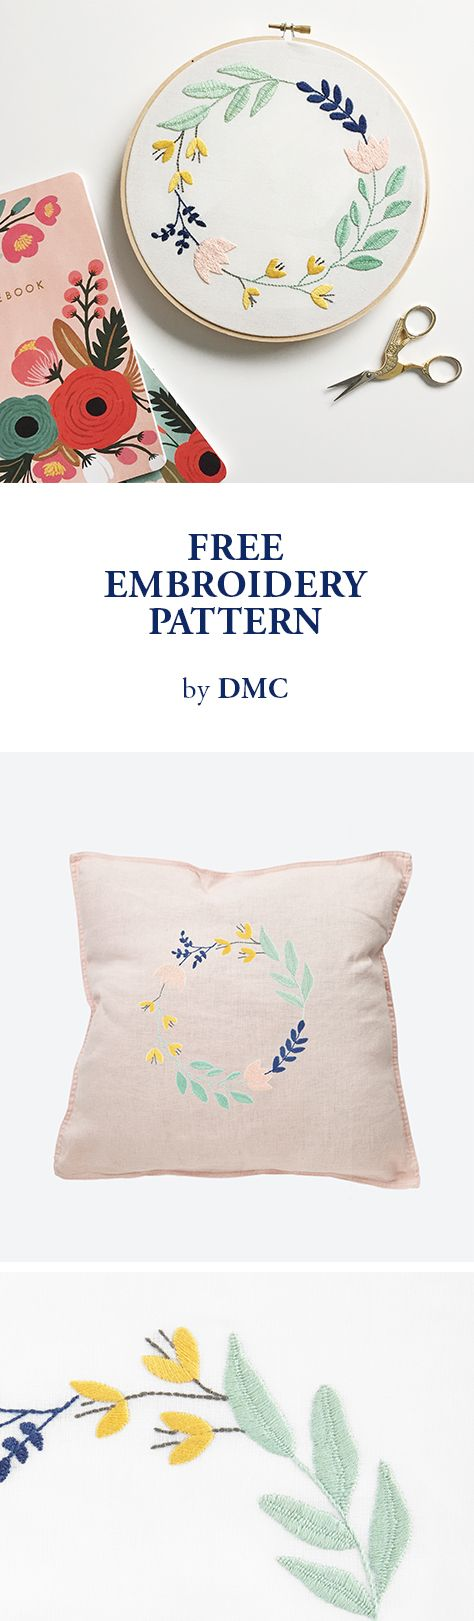 Free embroidery pattern from dmc embroidery ideas embroidery for free embroidery pattern from dmc embroidery ideas embroidery for beginners embroidery stitches dt1010fo